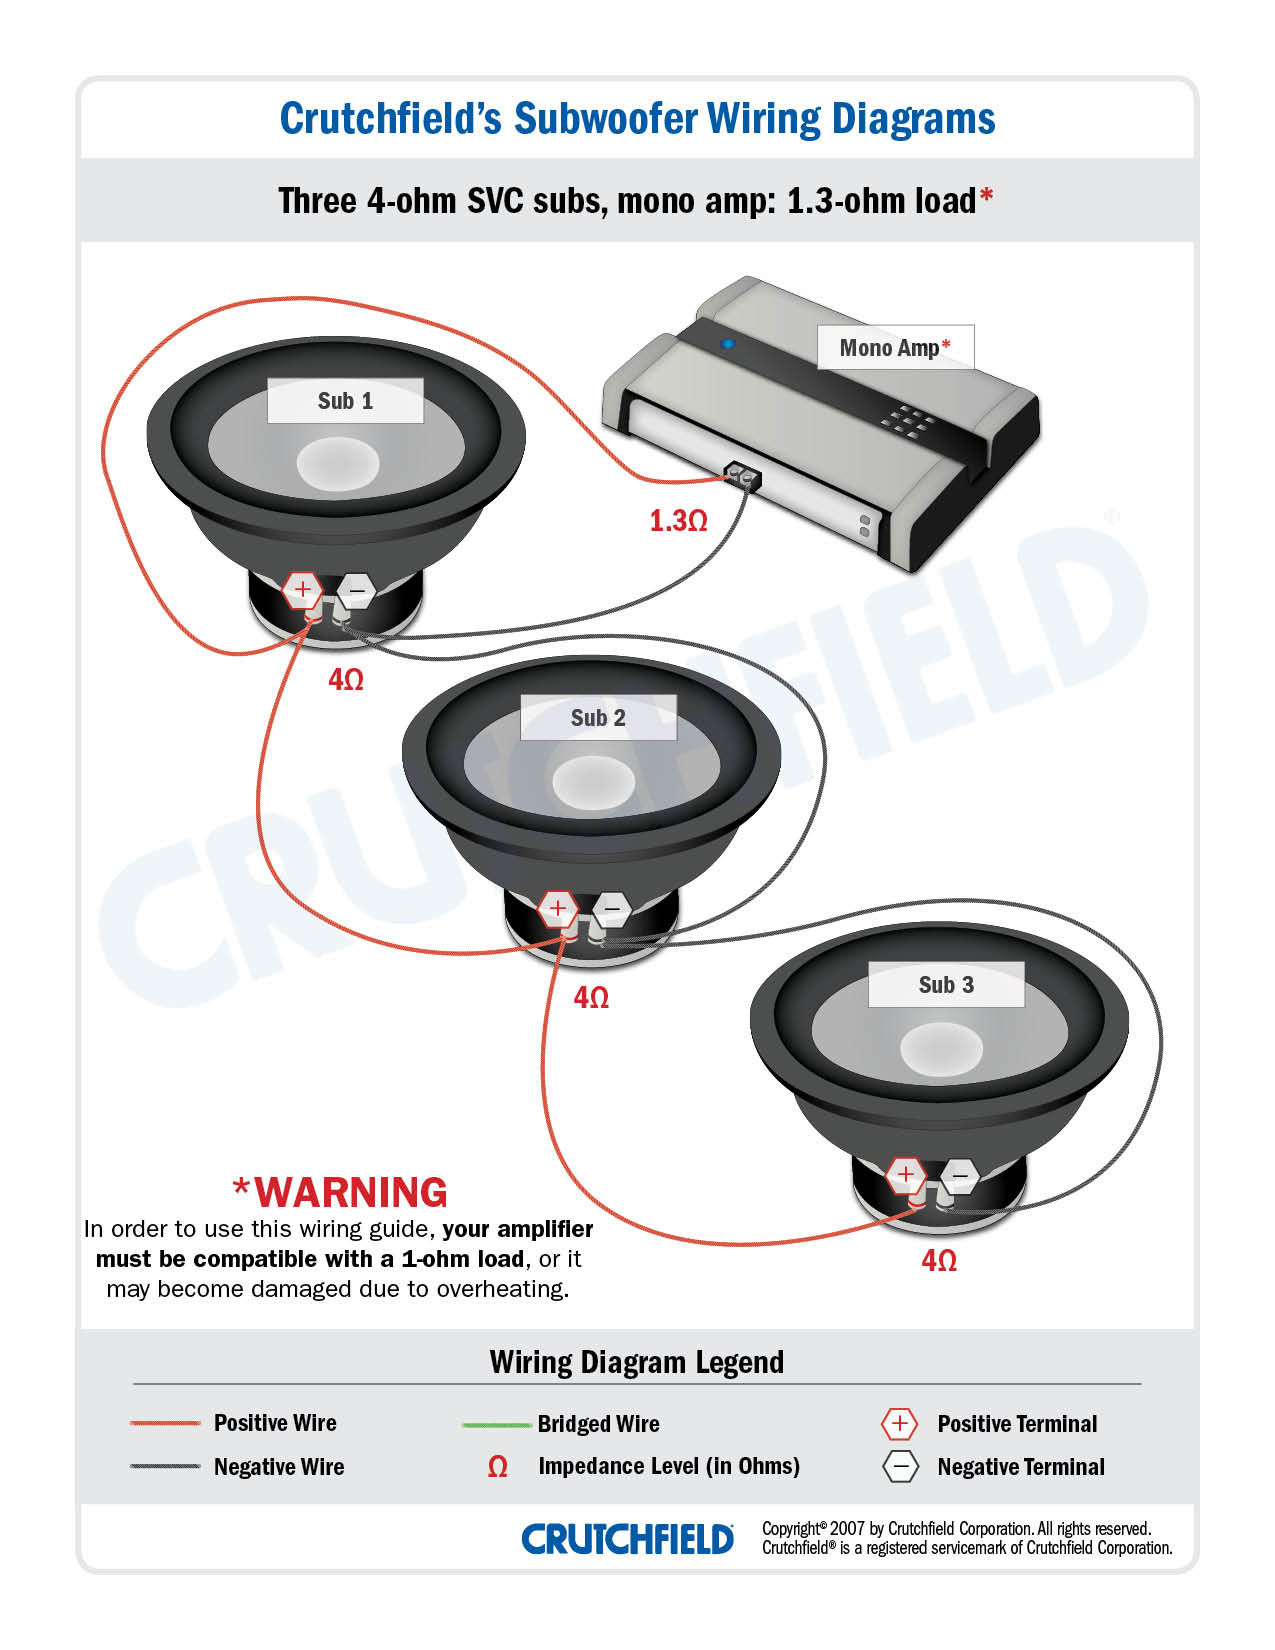 3 SVC 4 ohm mono low imp quick guide to matching subs & amps how to put together the best monoblock amp wiring diagram at crackthecode.co